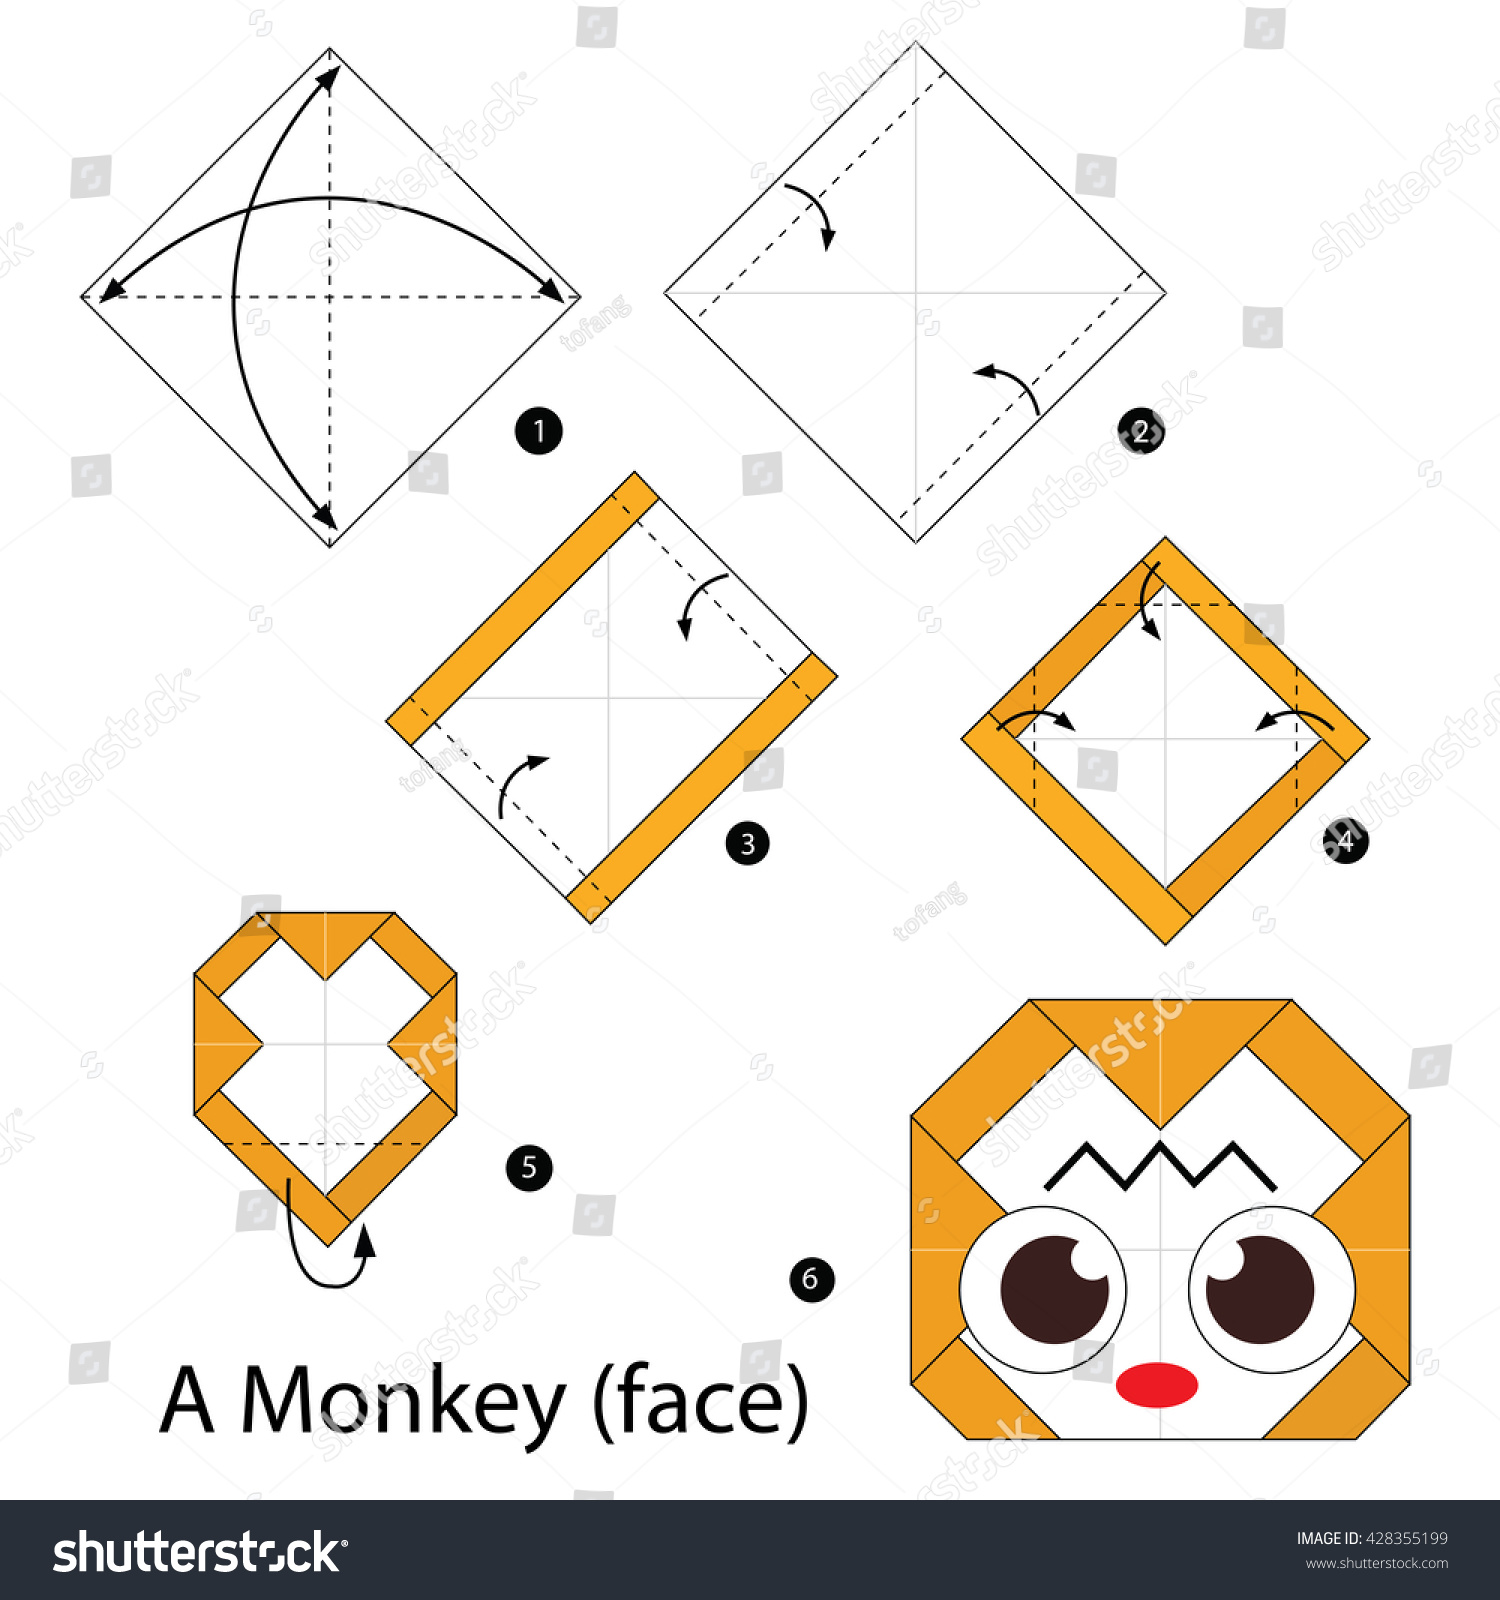 Step By Instructions How To Make An Origami A Monkey 428355199